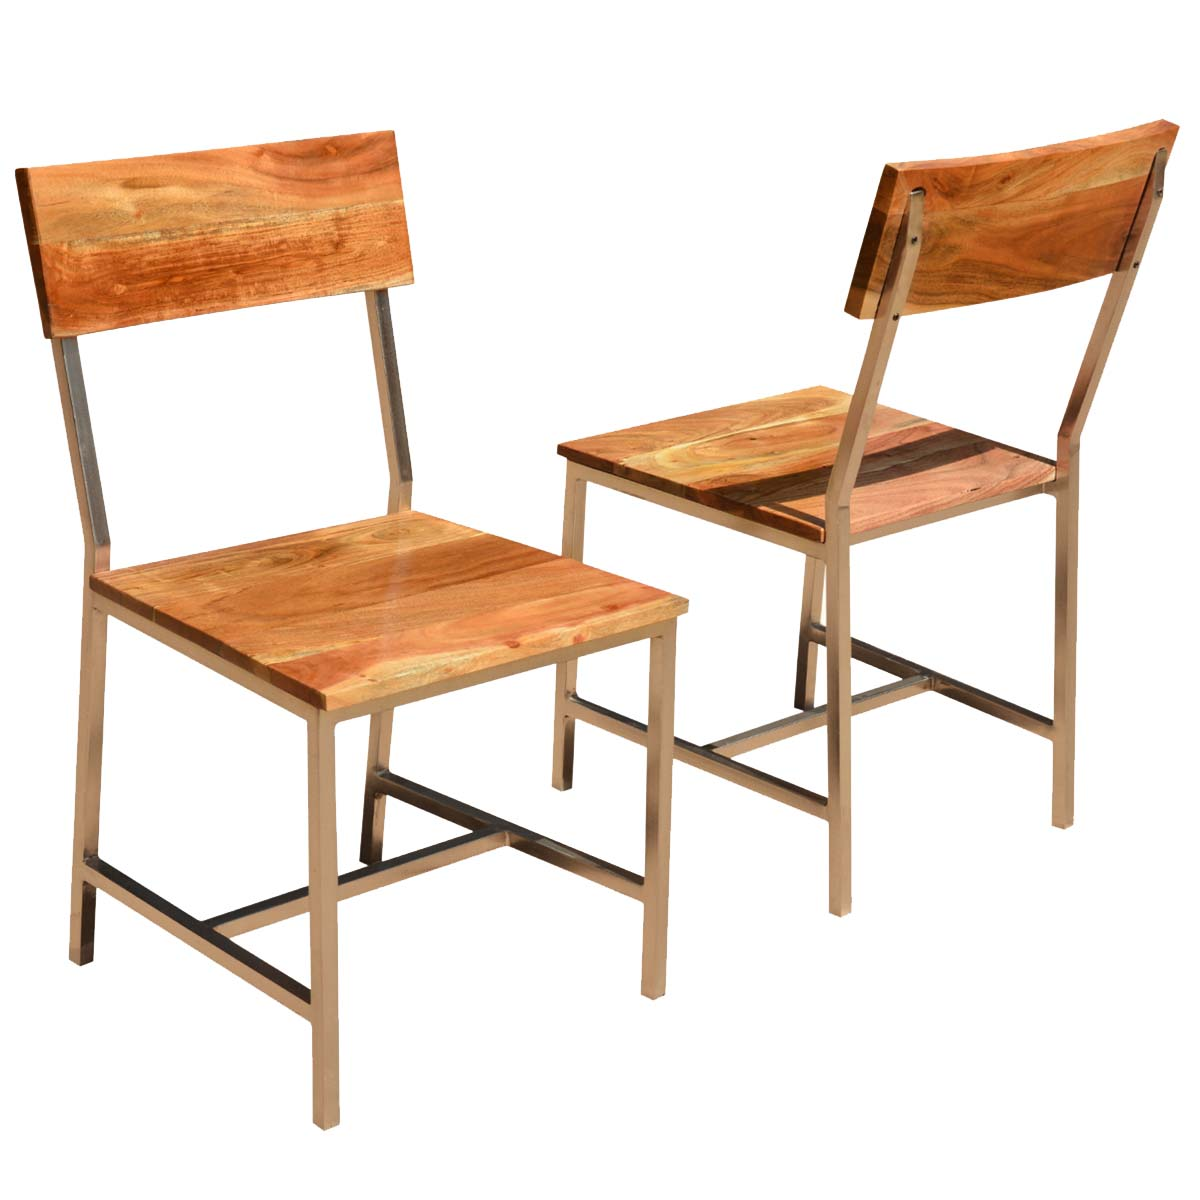 Admirable Solid Wood Iron Rustic Dining Chair Set Of 2 Ncnpc Chair Design For Home Ncnpcorg